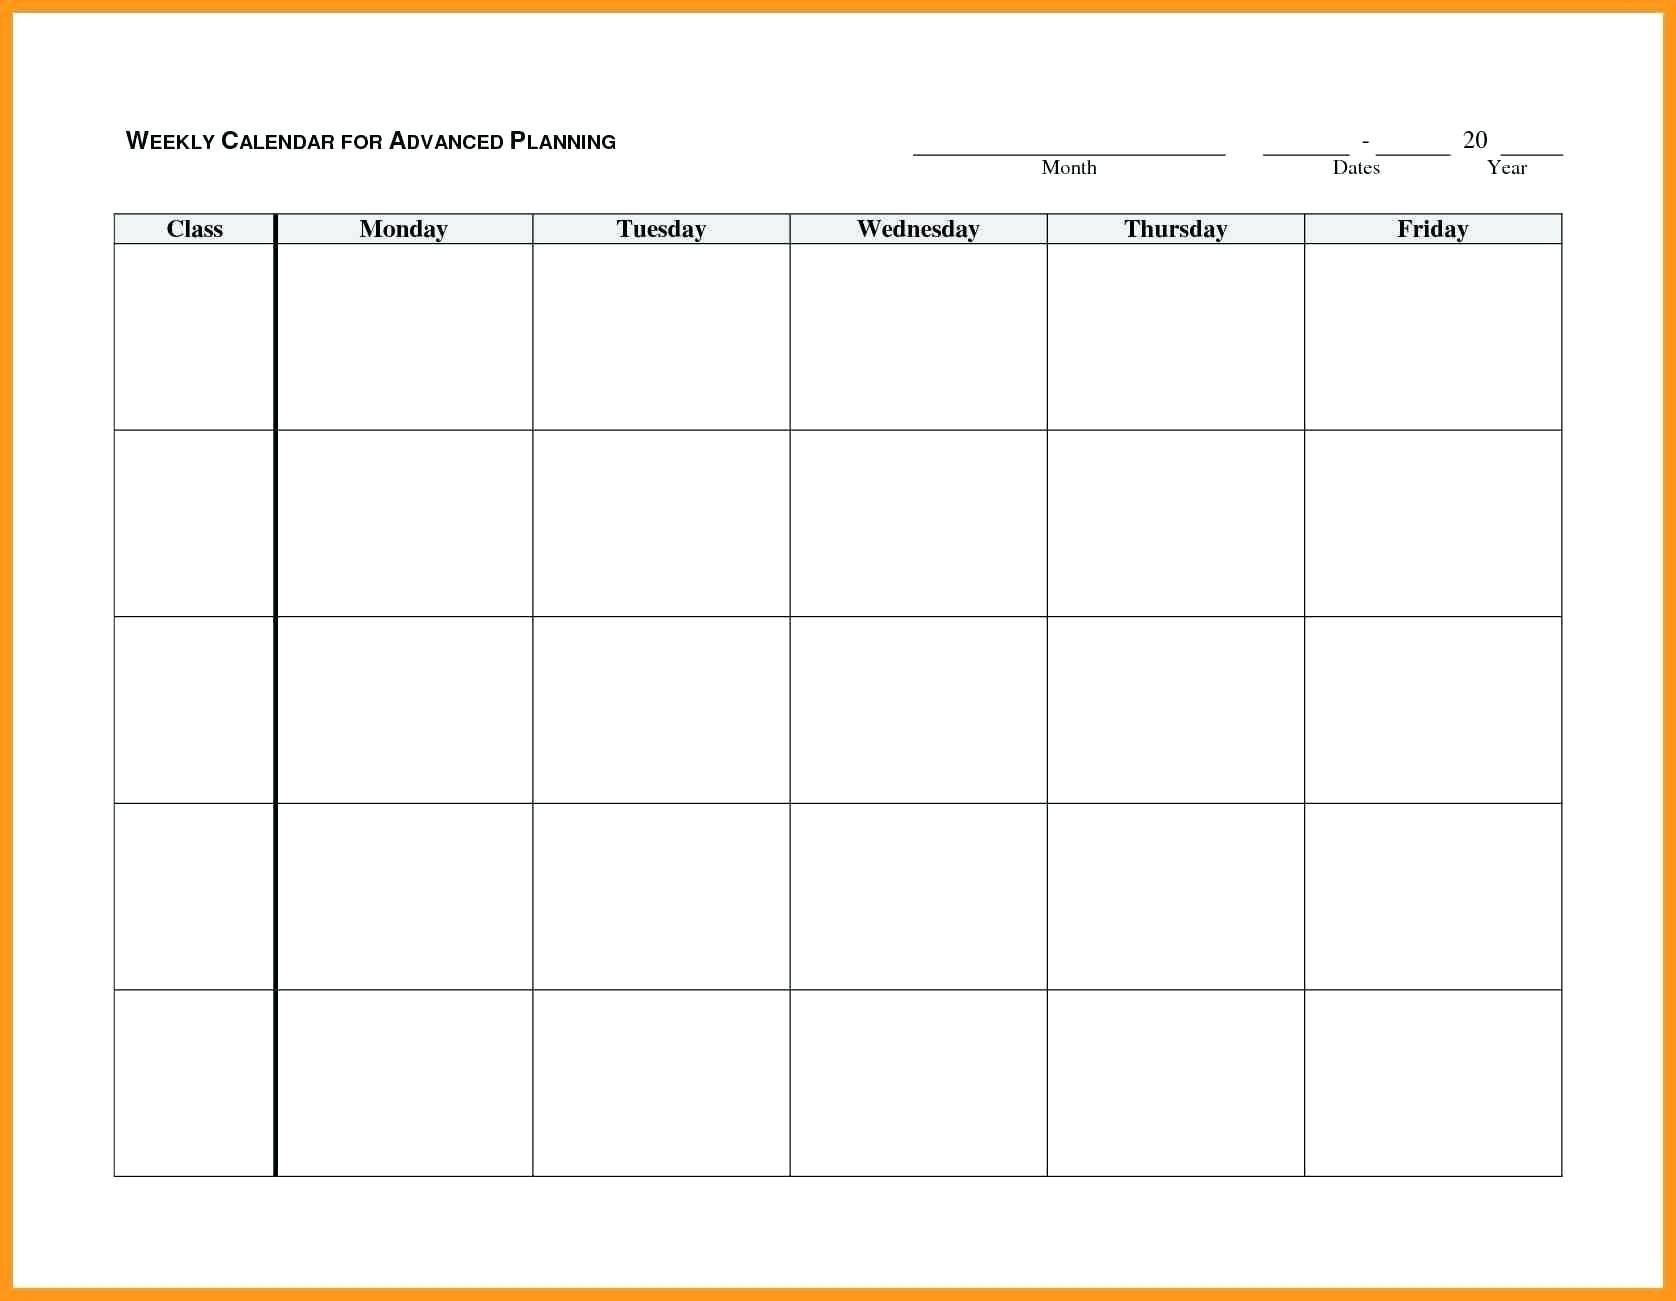 Blank Monday Through Friday Month Calendar Template :-Free  Editable Monday-Friday Shedule